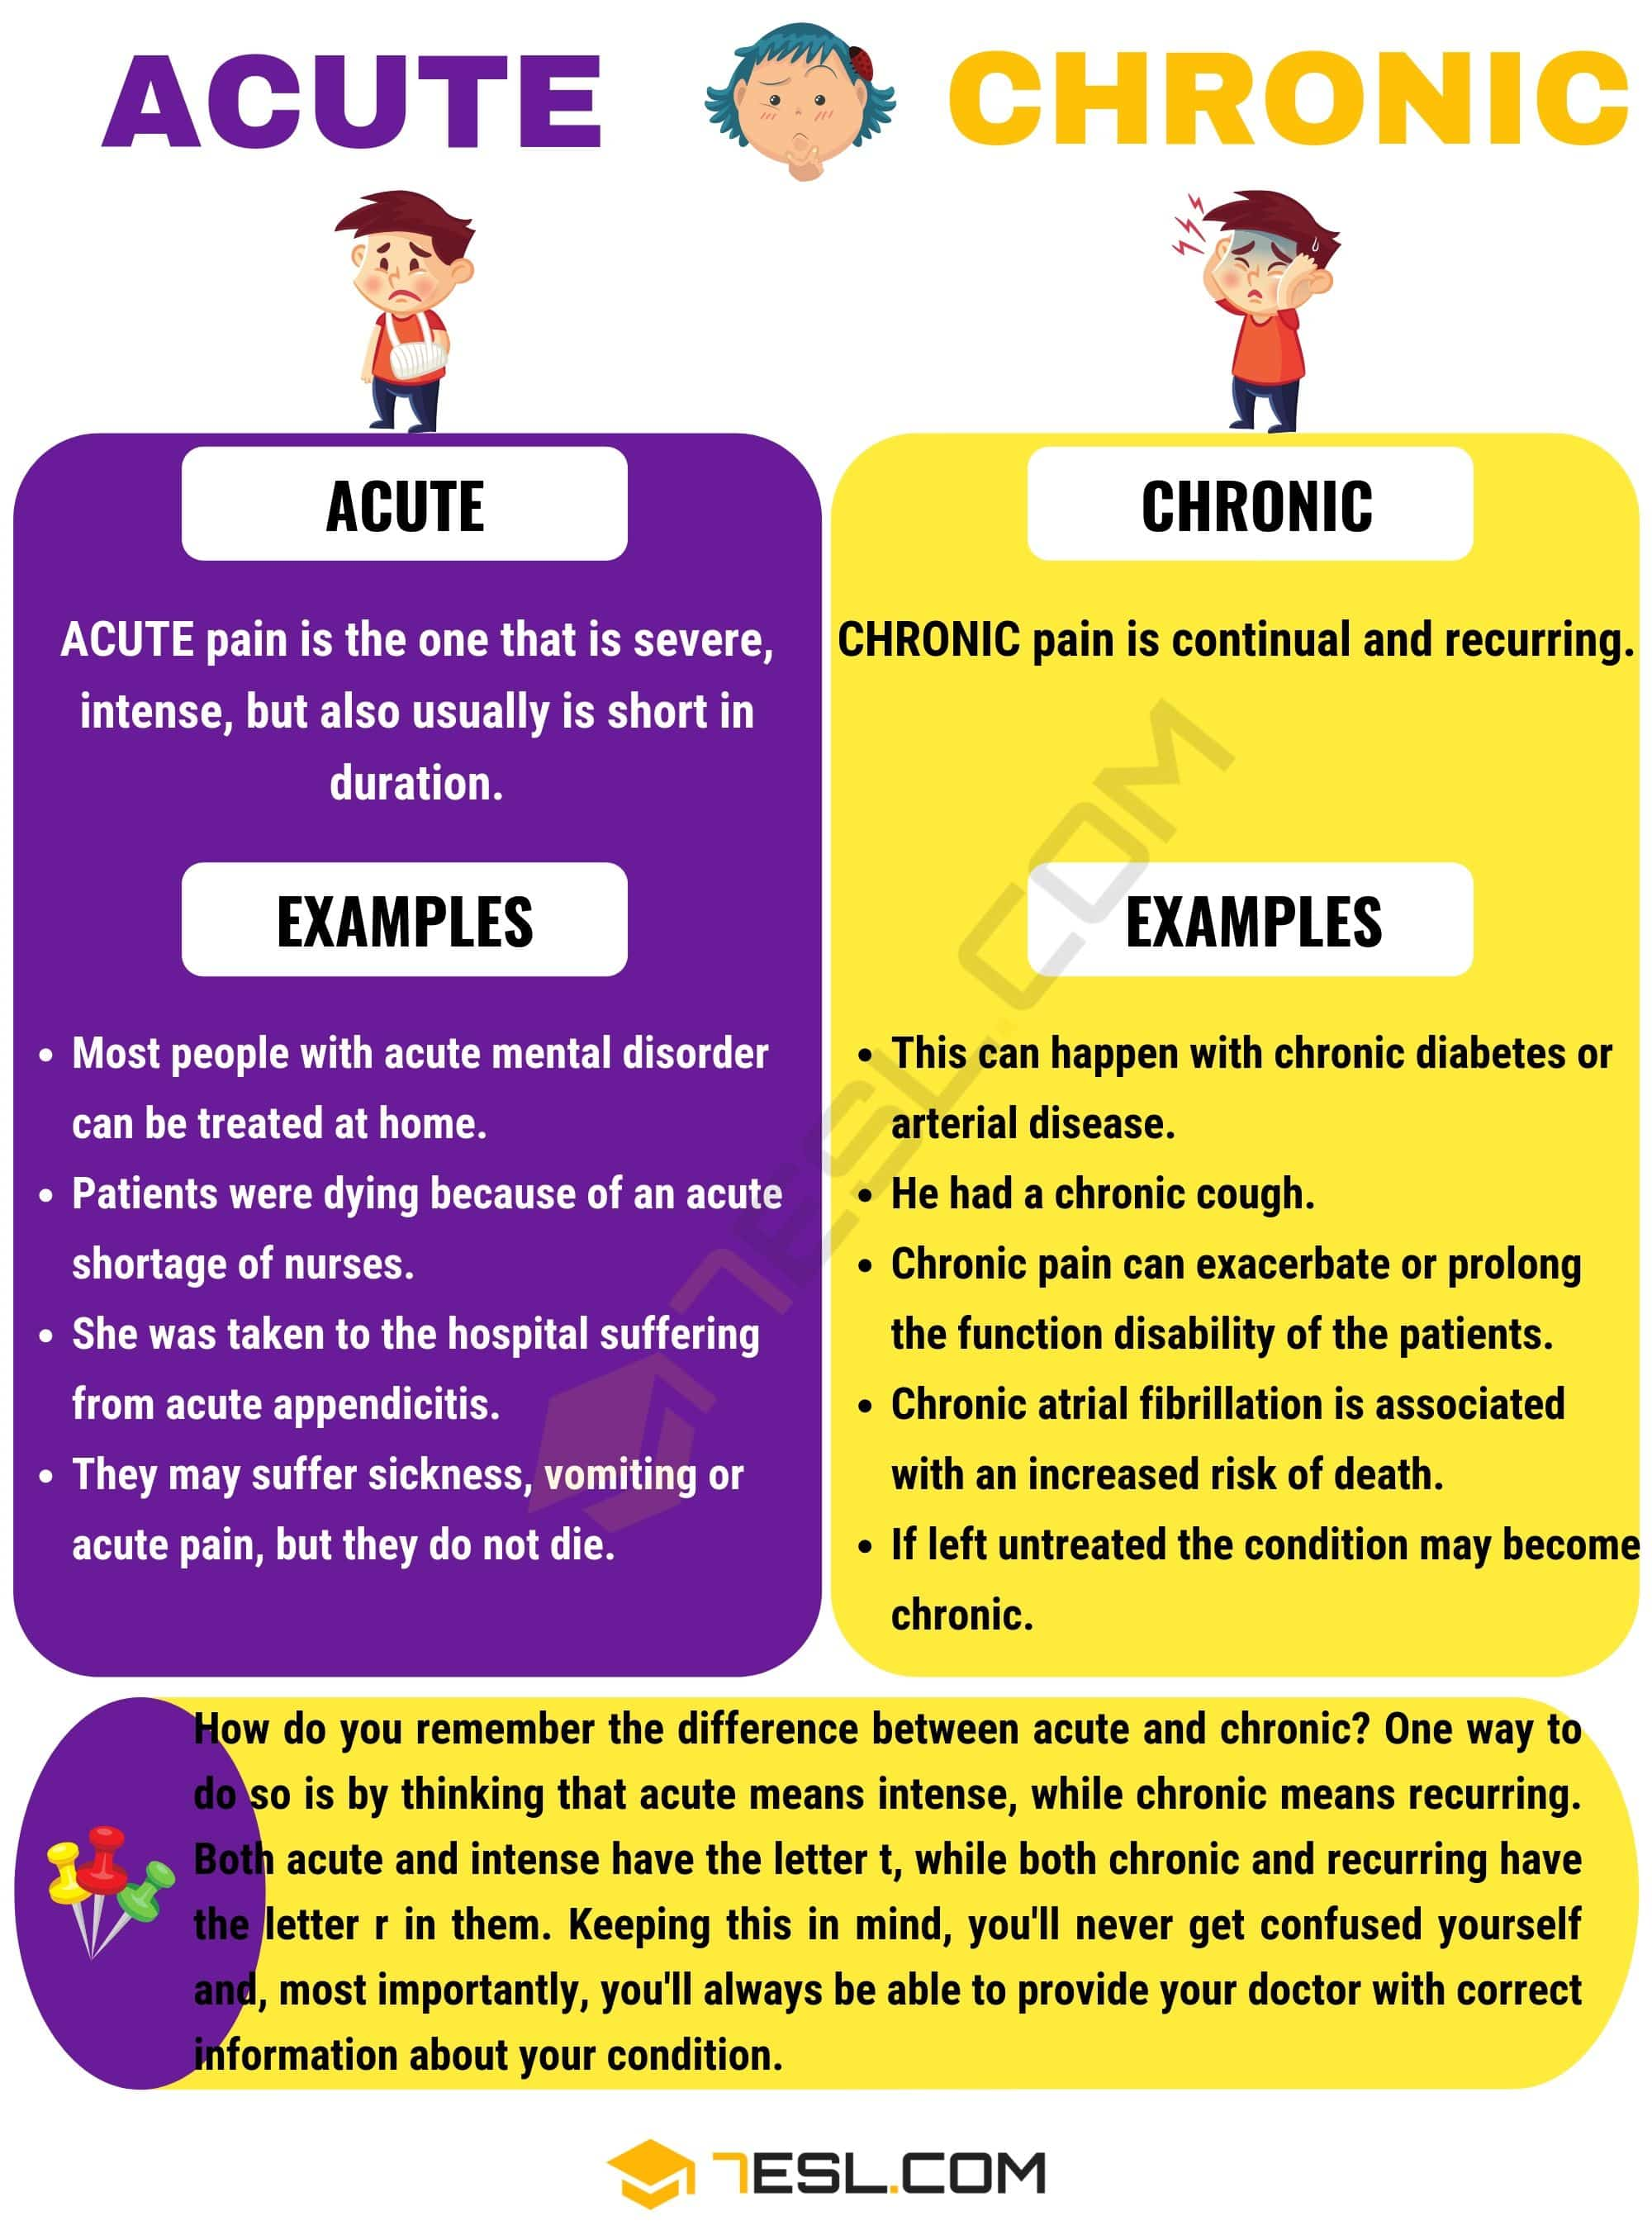 Acute vs Chronic